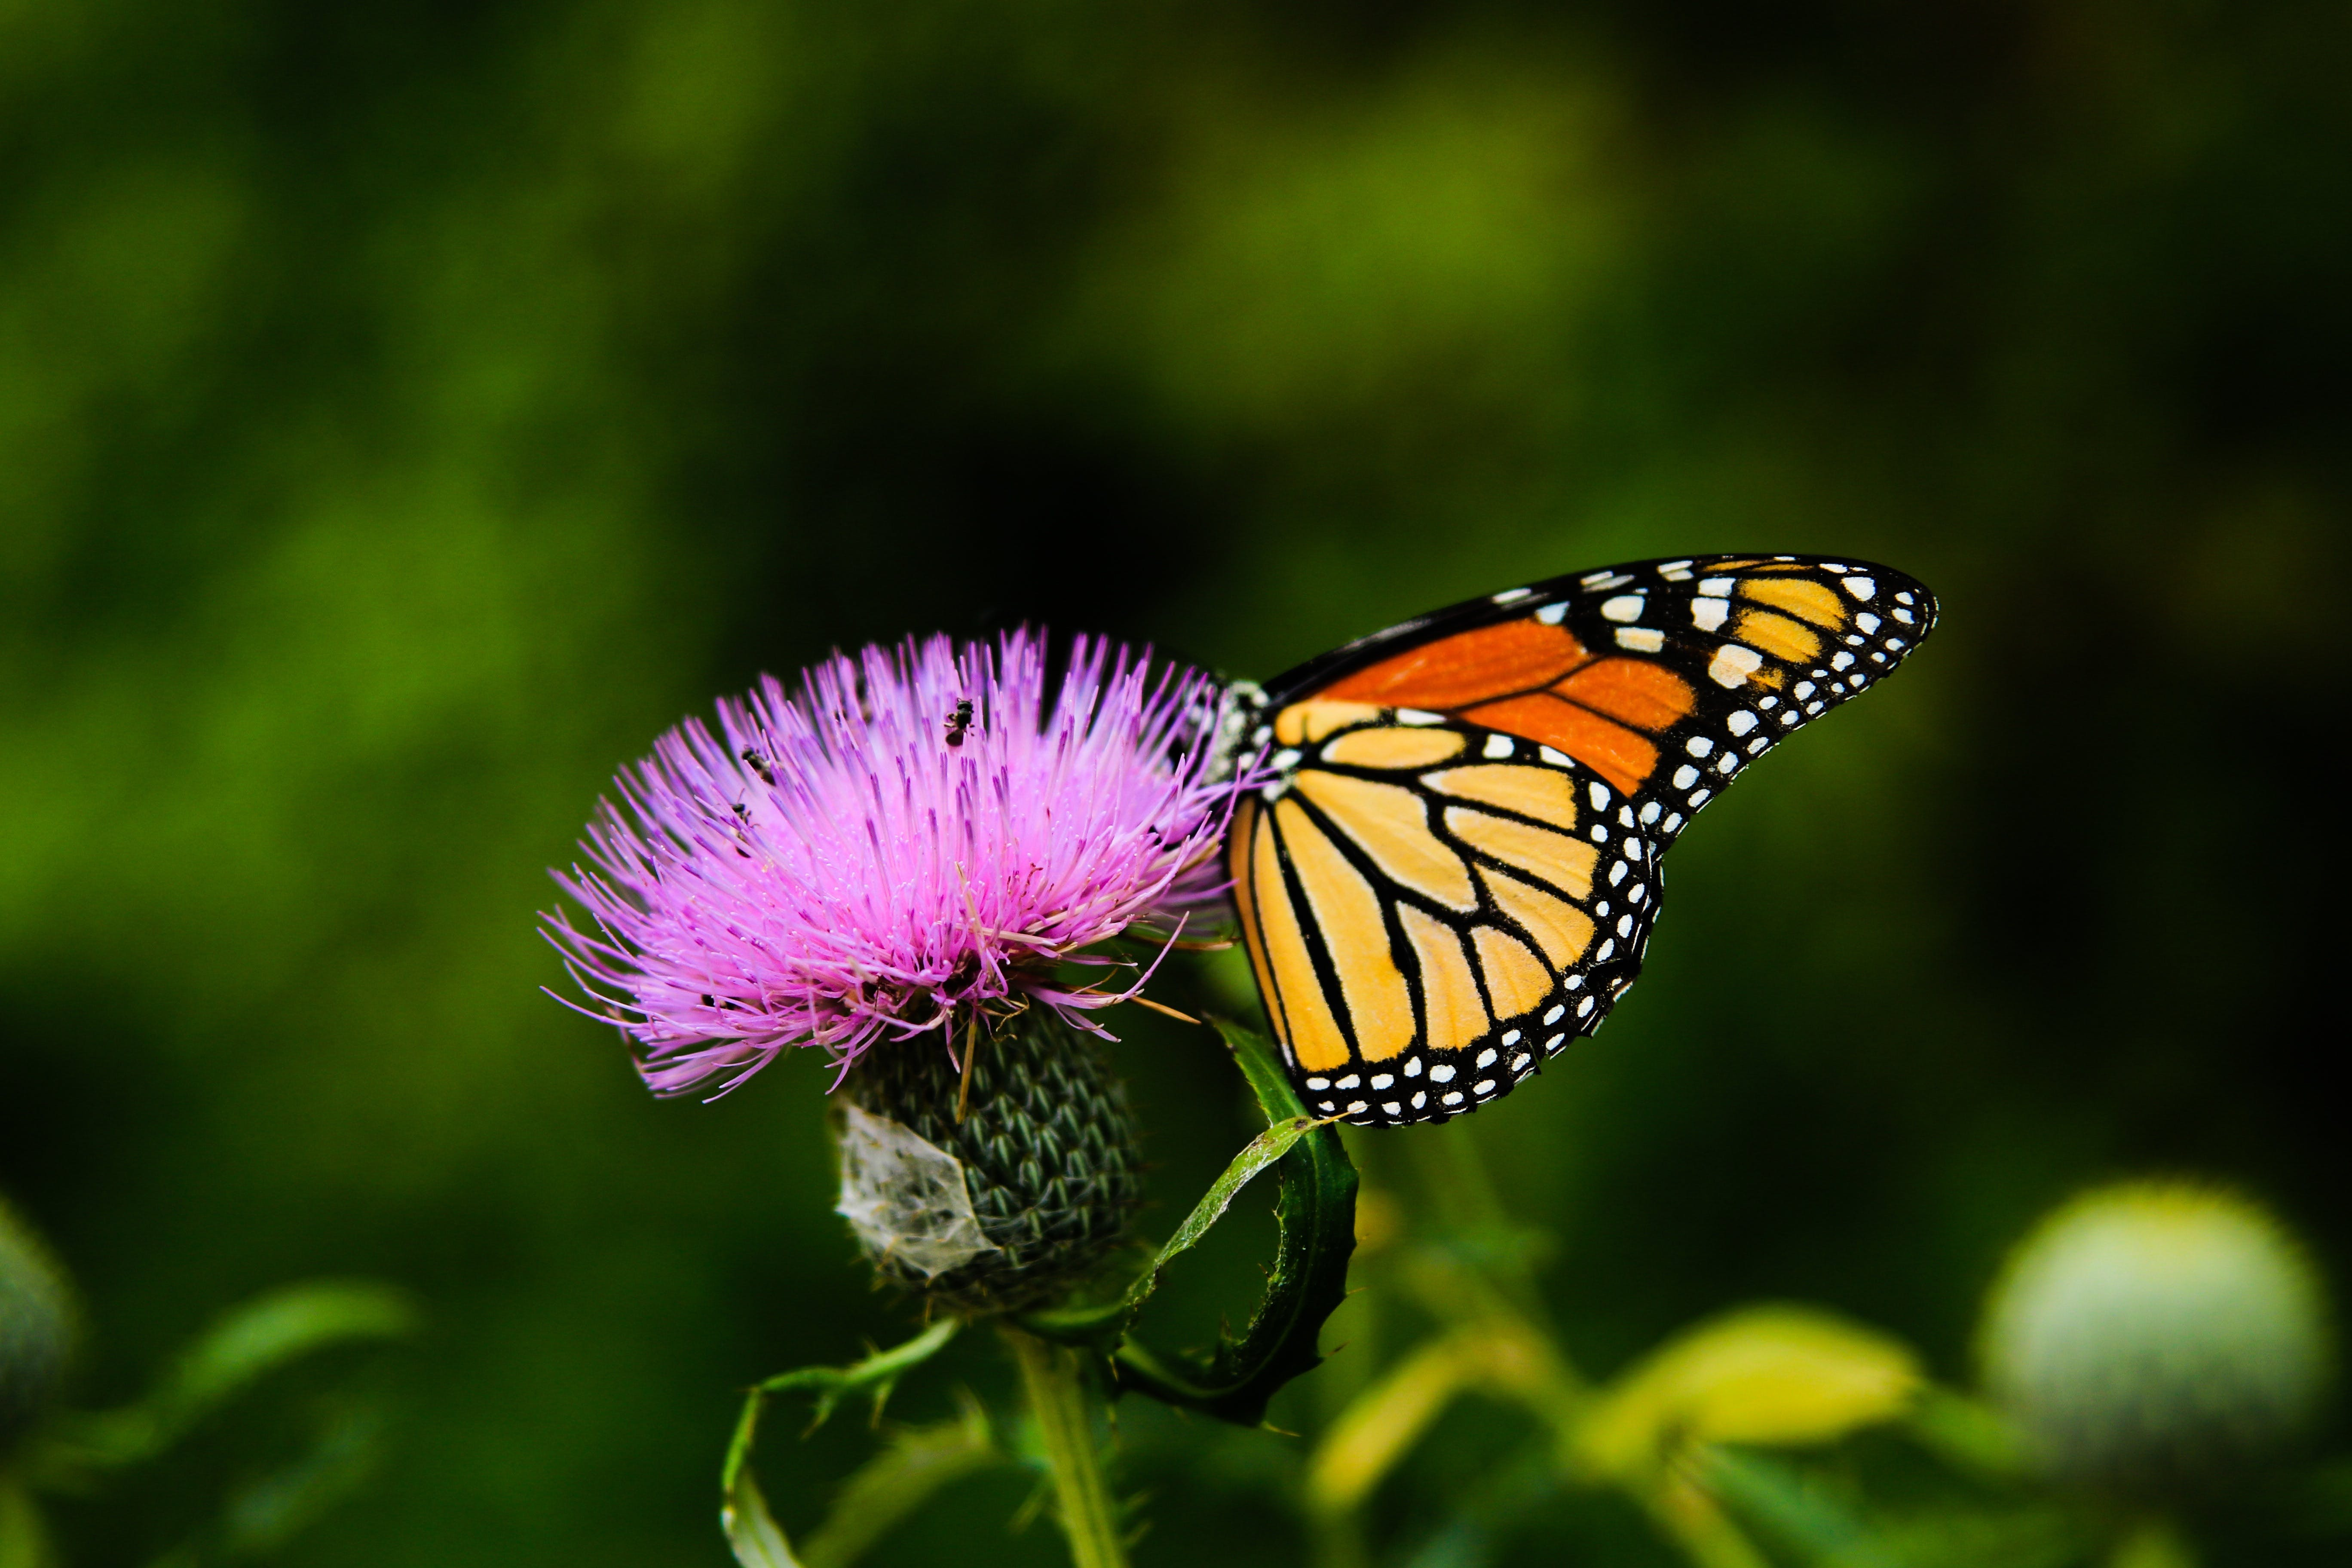 Free stock photo of butterfly, butterly on flower, colored, colorful